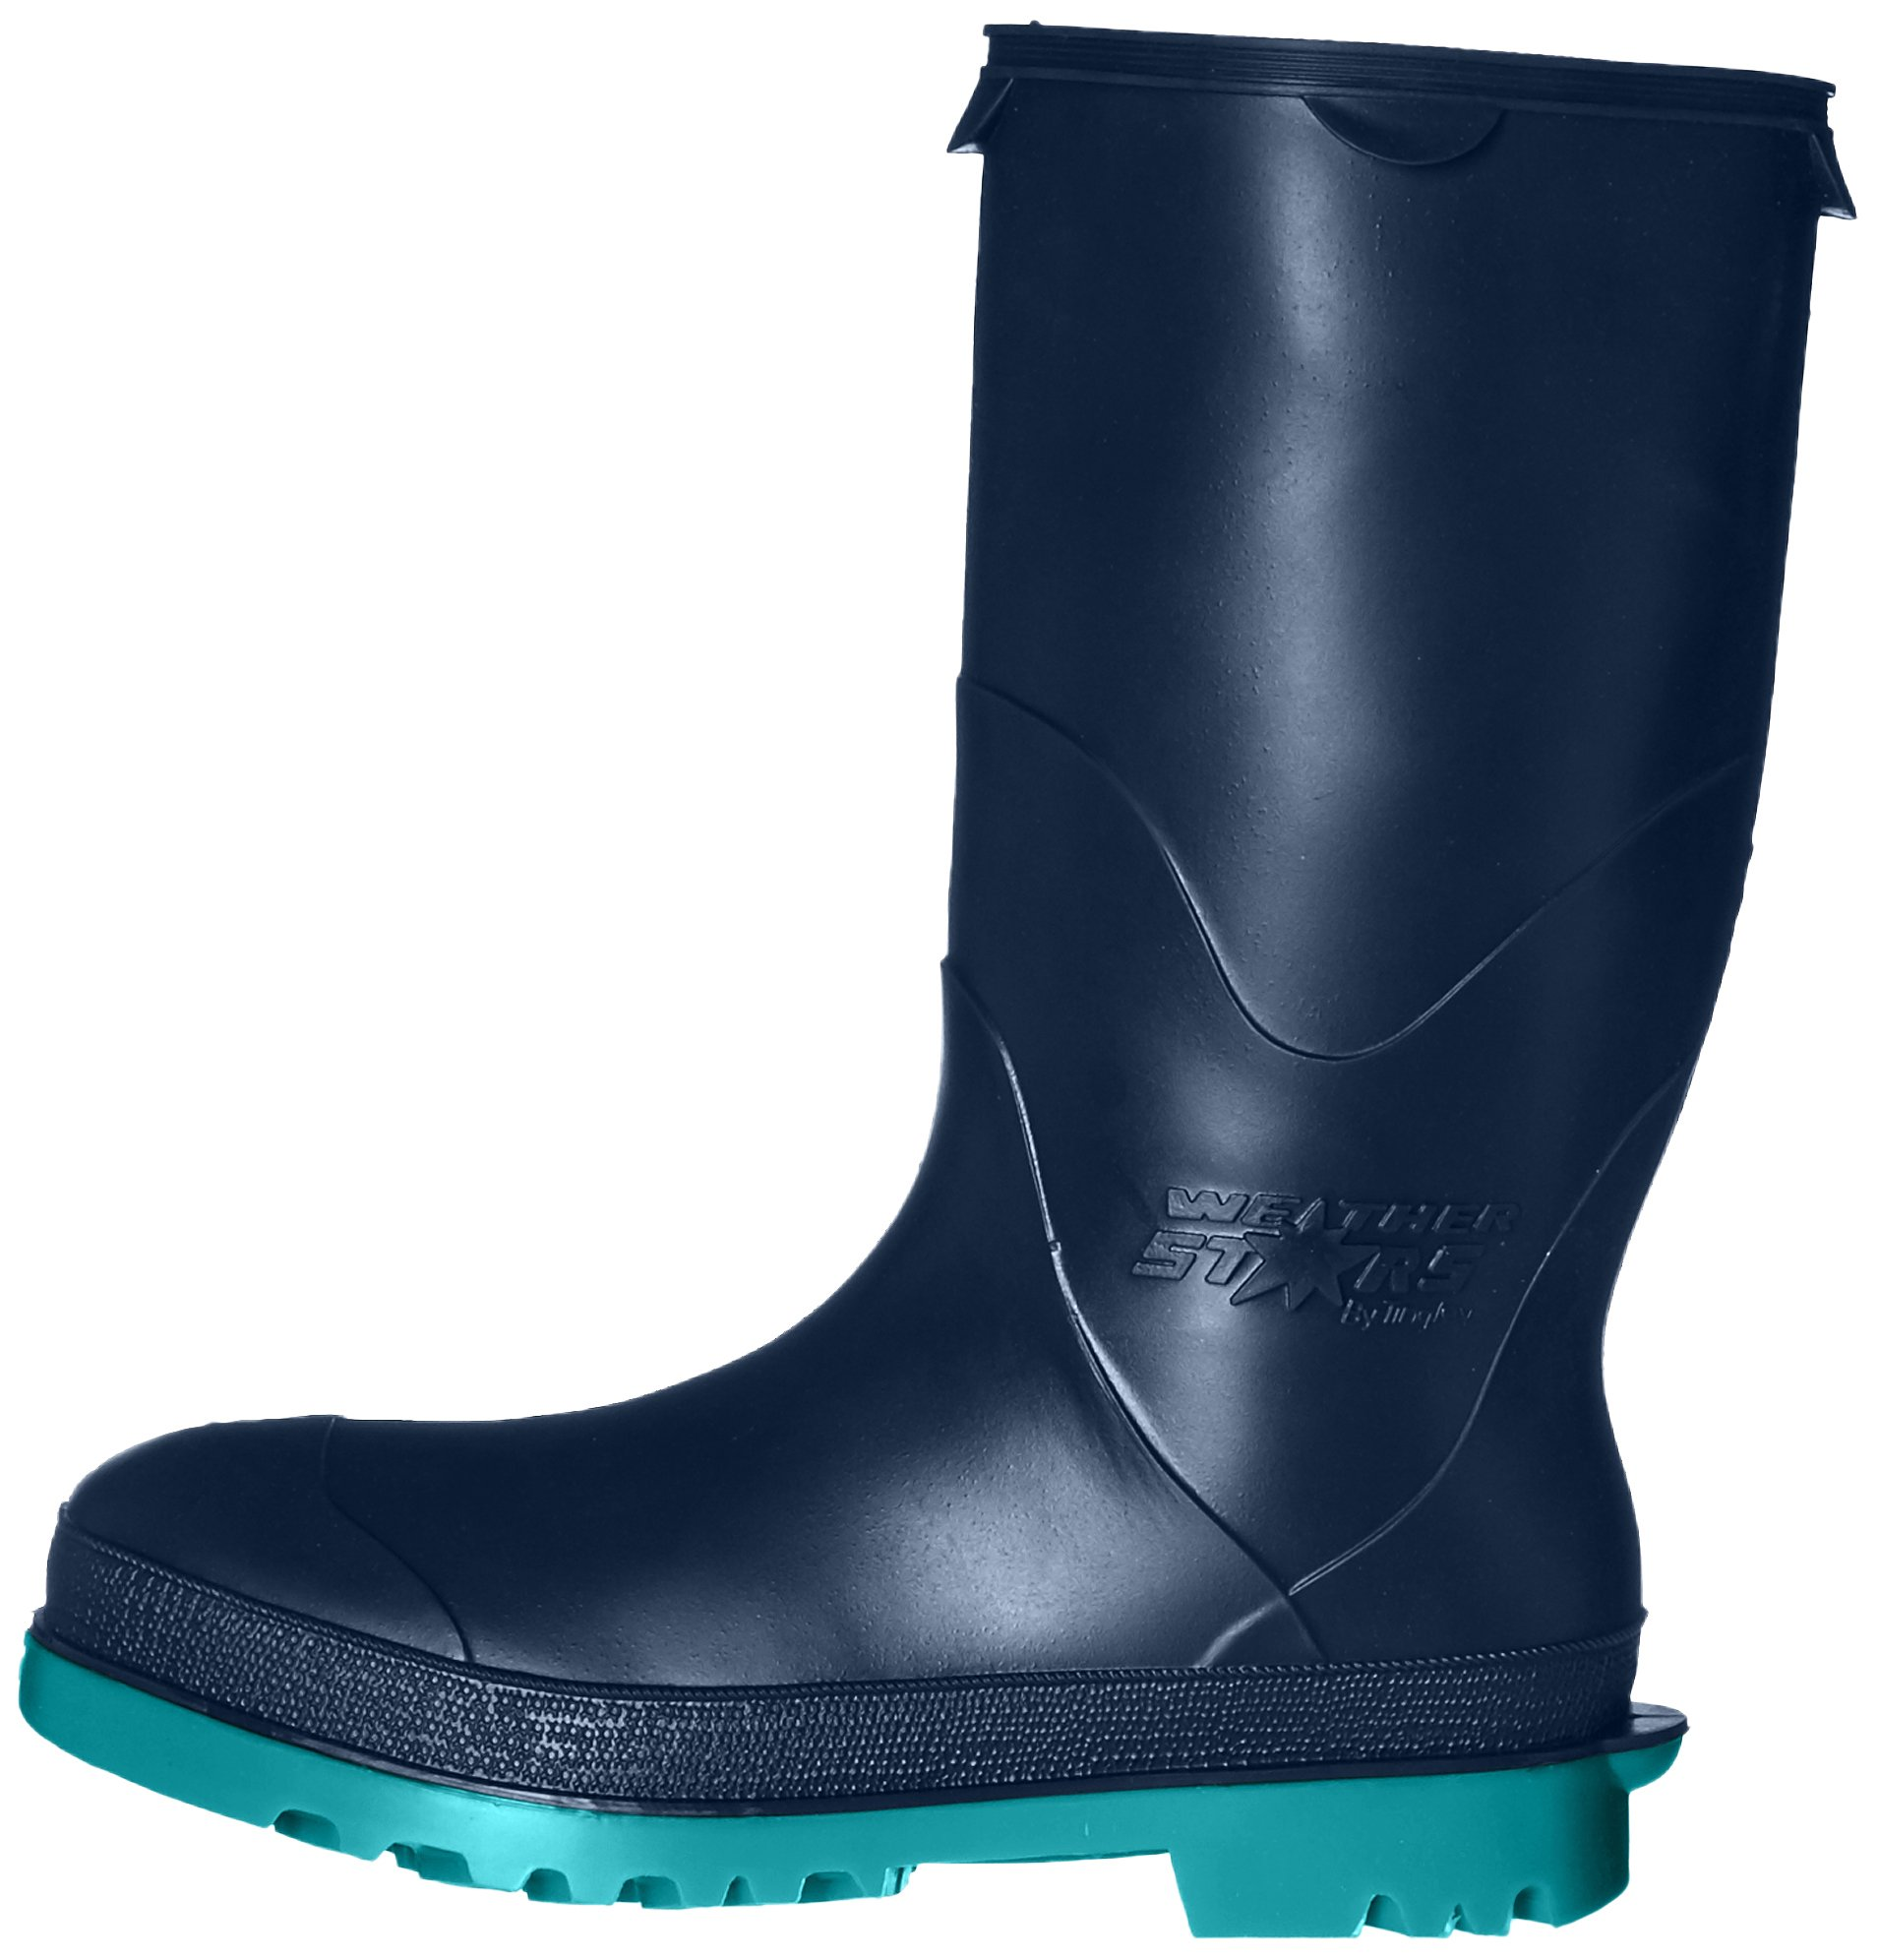 STORMTRACKS 11768.04 Youths' Boot, Size 04, Blue/Green by STORMTRACKS (Image #4)